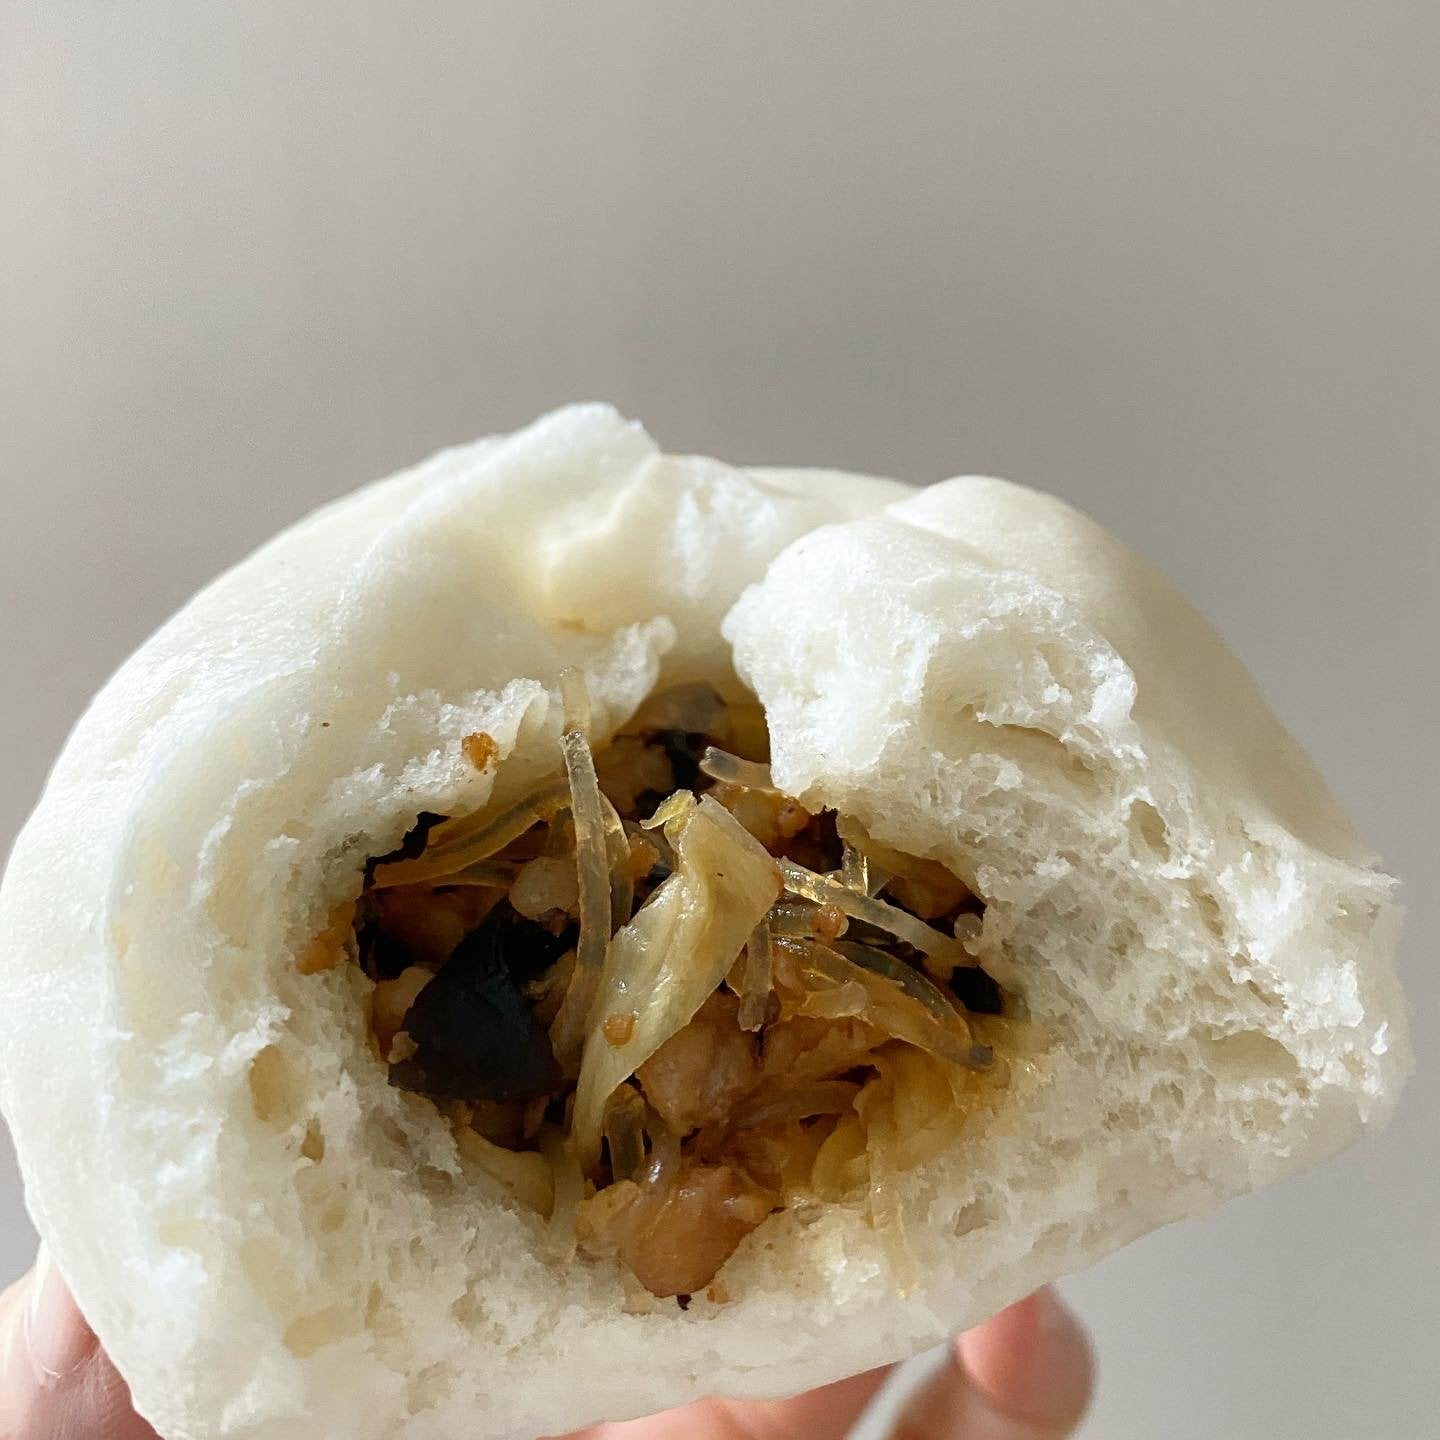 Mixed bao buns (4)